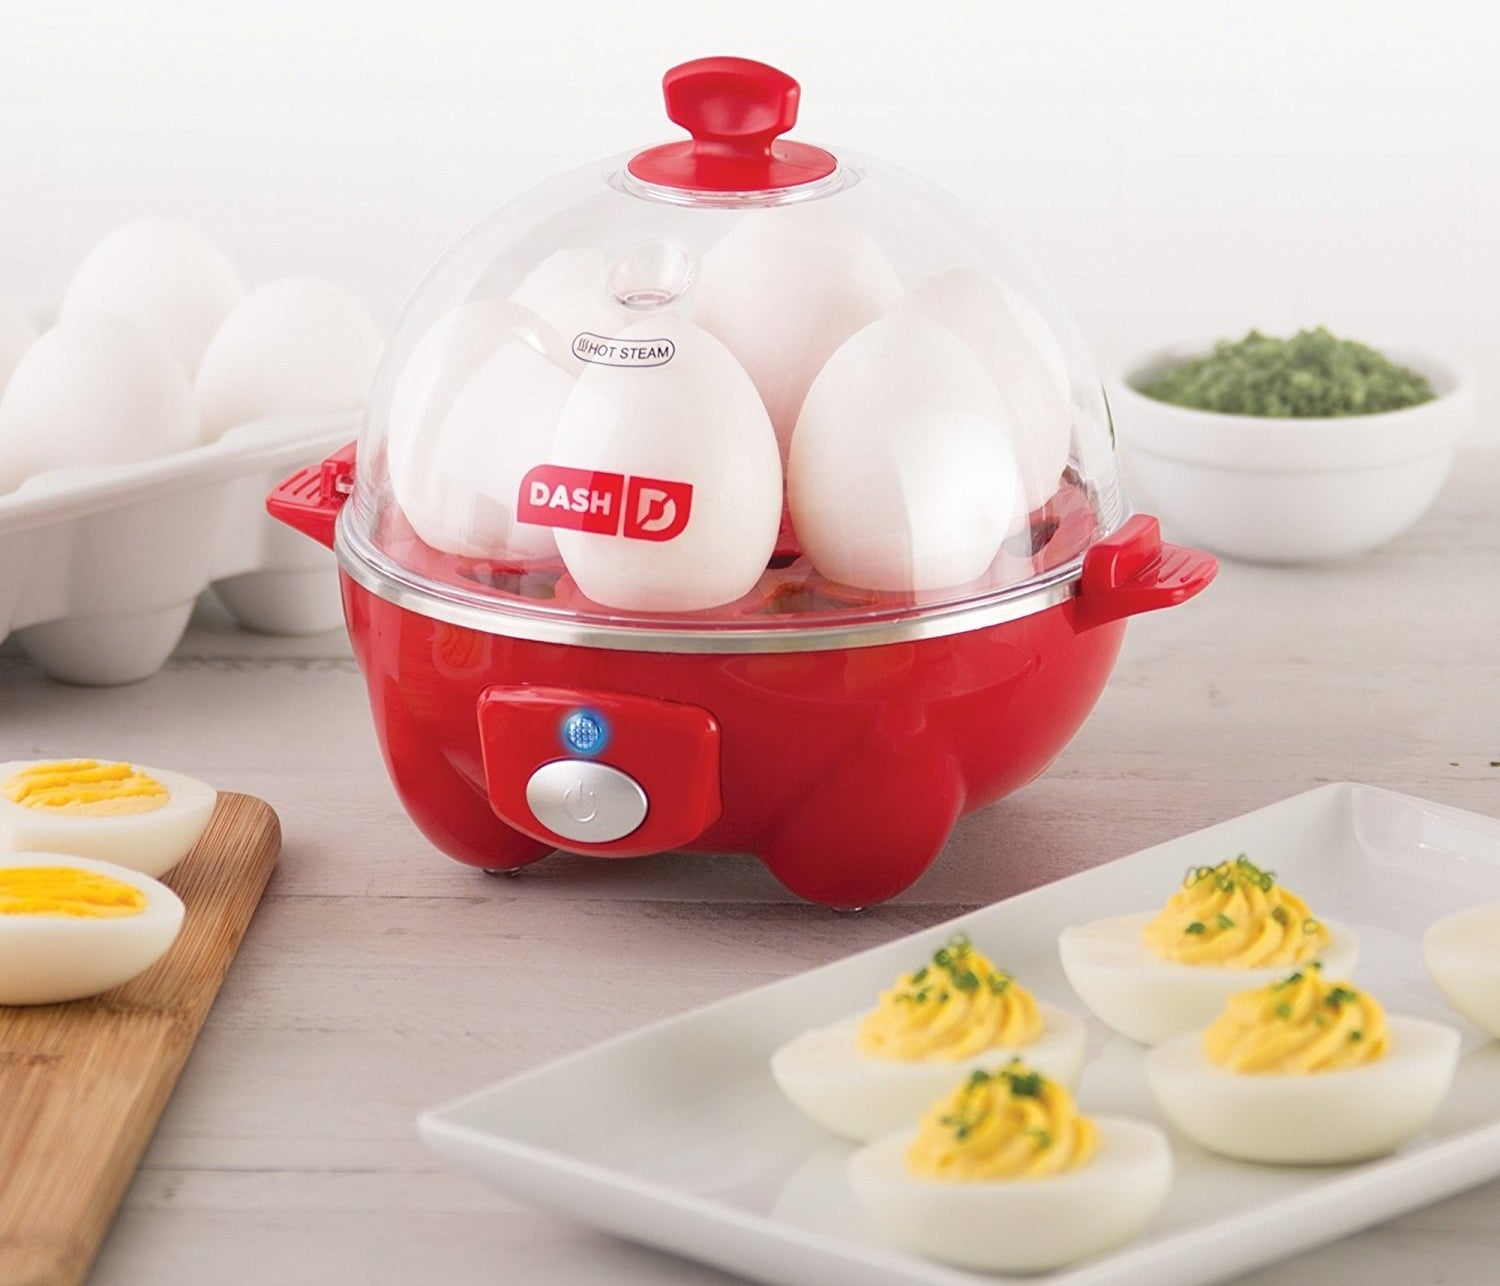 "Promising review: ""This thing is NO JOKE the easiest thing I've ever used in my life. Pretty sure it's idiot proof. And I'm an idiot in the kitchen. I love hard-boiled eggs, but I'm the kind of cooking-illiterate person who can't even boil water right. So I bought this puppy, read the directions carefully, got 6 eggs, and in 15 min, the buzzer went off and VOILA! Hard boiled eggs! I put them all in a bowl of ice water right after the buzzer went off, just for a minute or two (That was a tip in the instructions). That really made the shells come off easily. In one piece even! It was a joy to make these! They were perfectly cooked, nice and yellow in the centers, tasted awesome. I'm gonna make a bunch more and use them as quick snacks. This appliance is so great and cheap! I couldn't believe how well it worked. It's really small and all the pieces are plastic or metal, but it works like a charm, so who cares! A+++++ Highly recommended."" —EmilyGet it from Amazon for $15.05+ (available in five colors). Also check out the double-decker version."